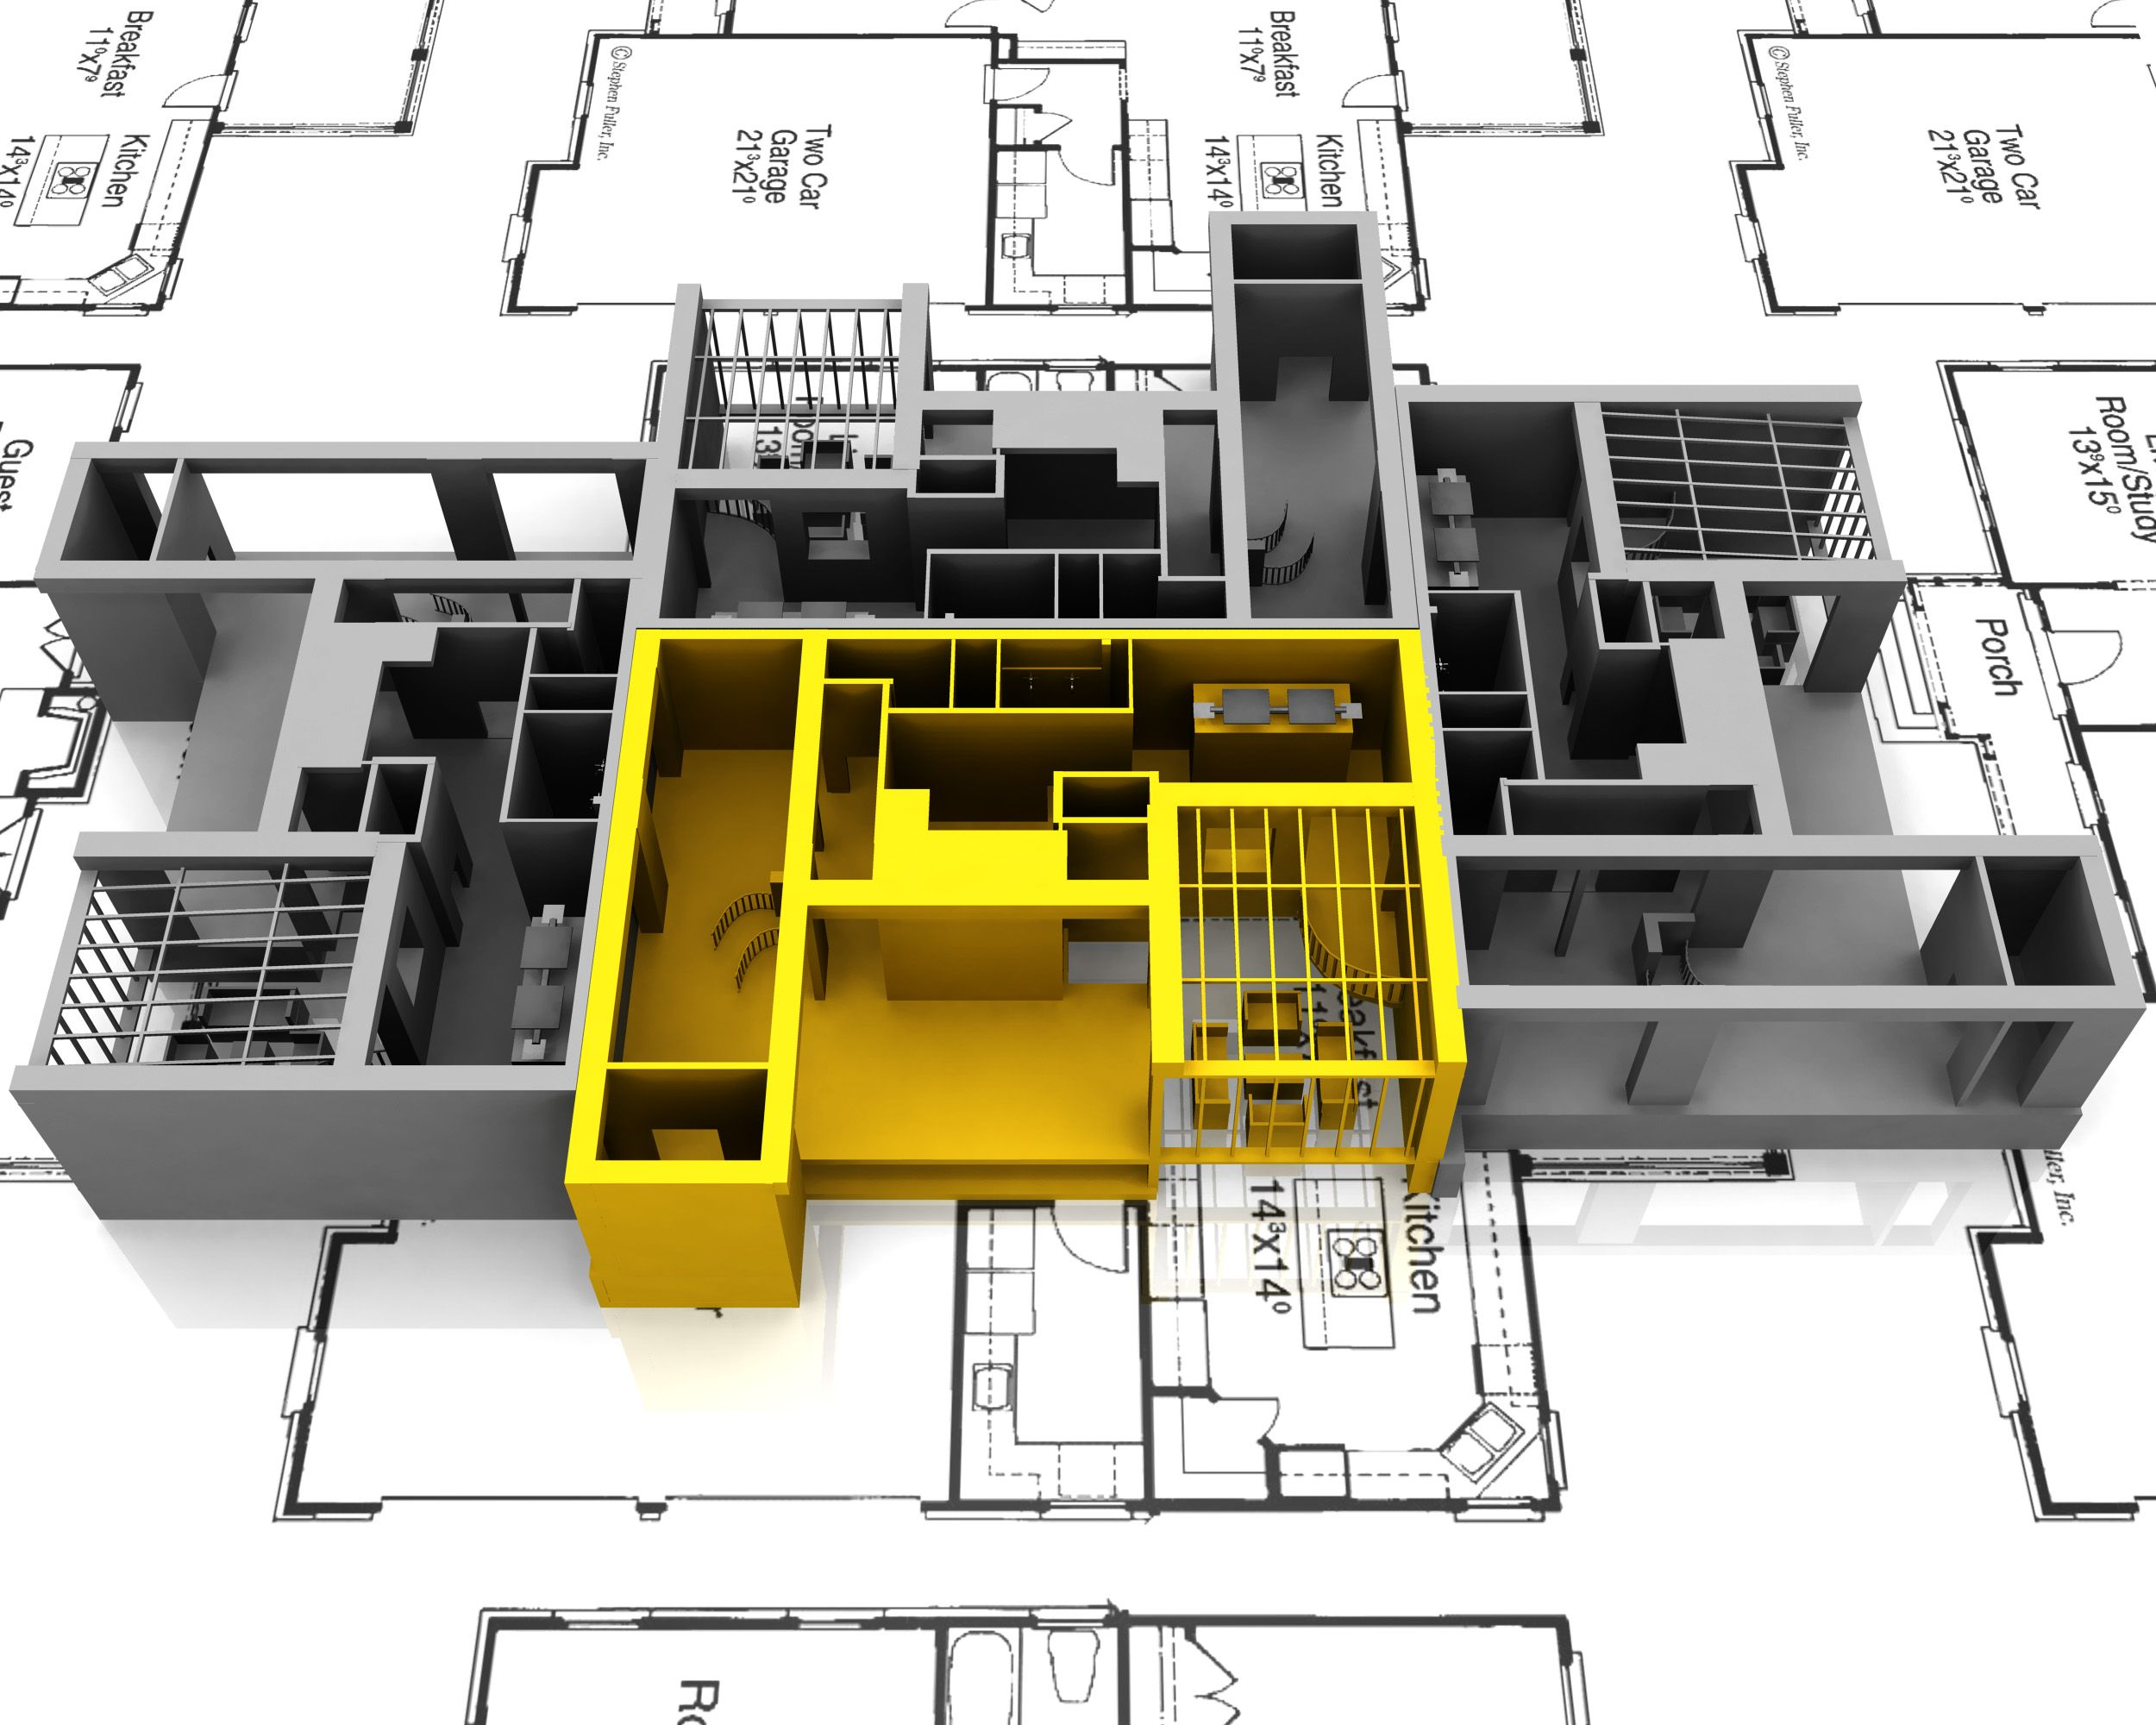 Yellow Apartment Mockup On Plans For Architecture Stock Photo Point Slide Template Presentation Templates Ppt Layout Deck